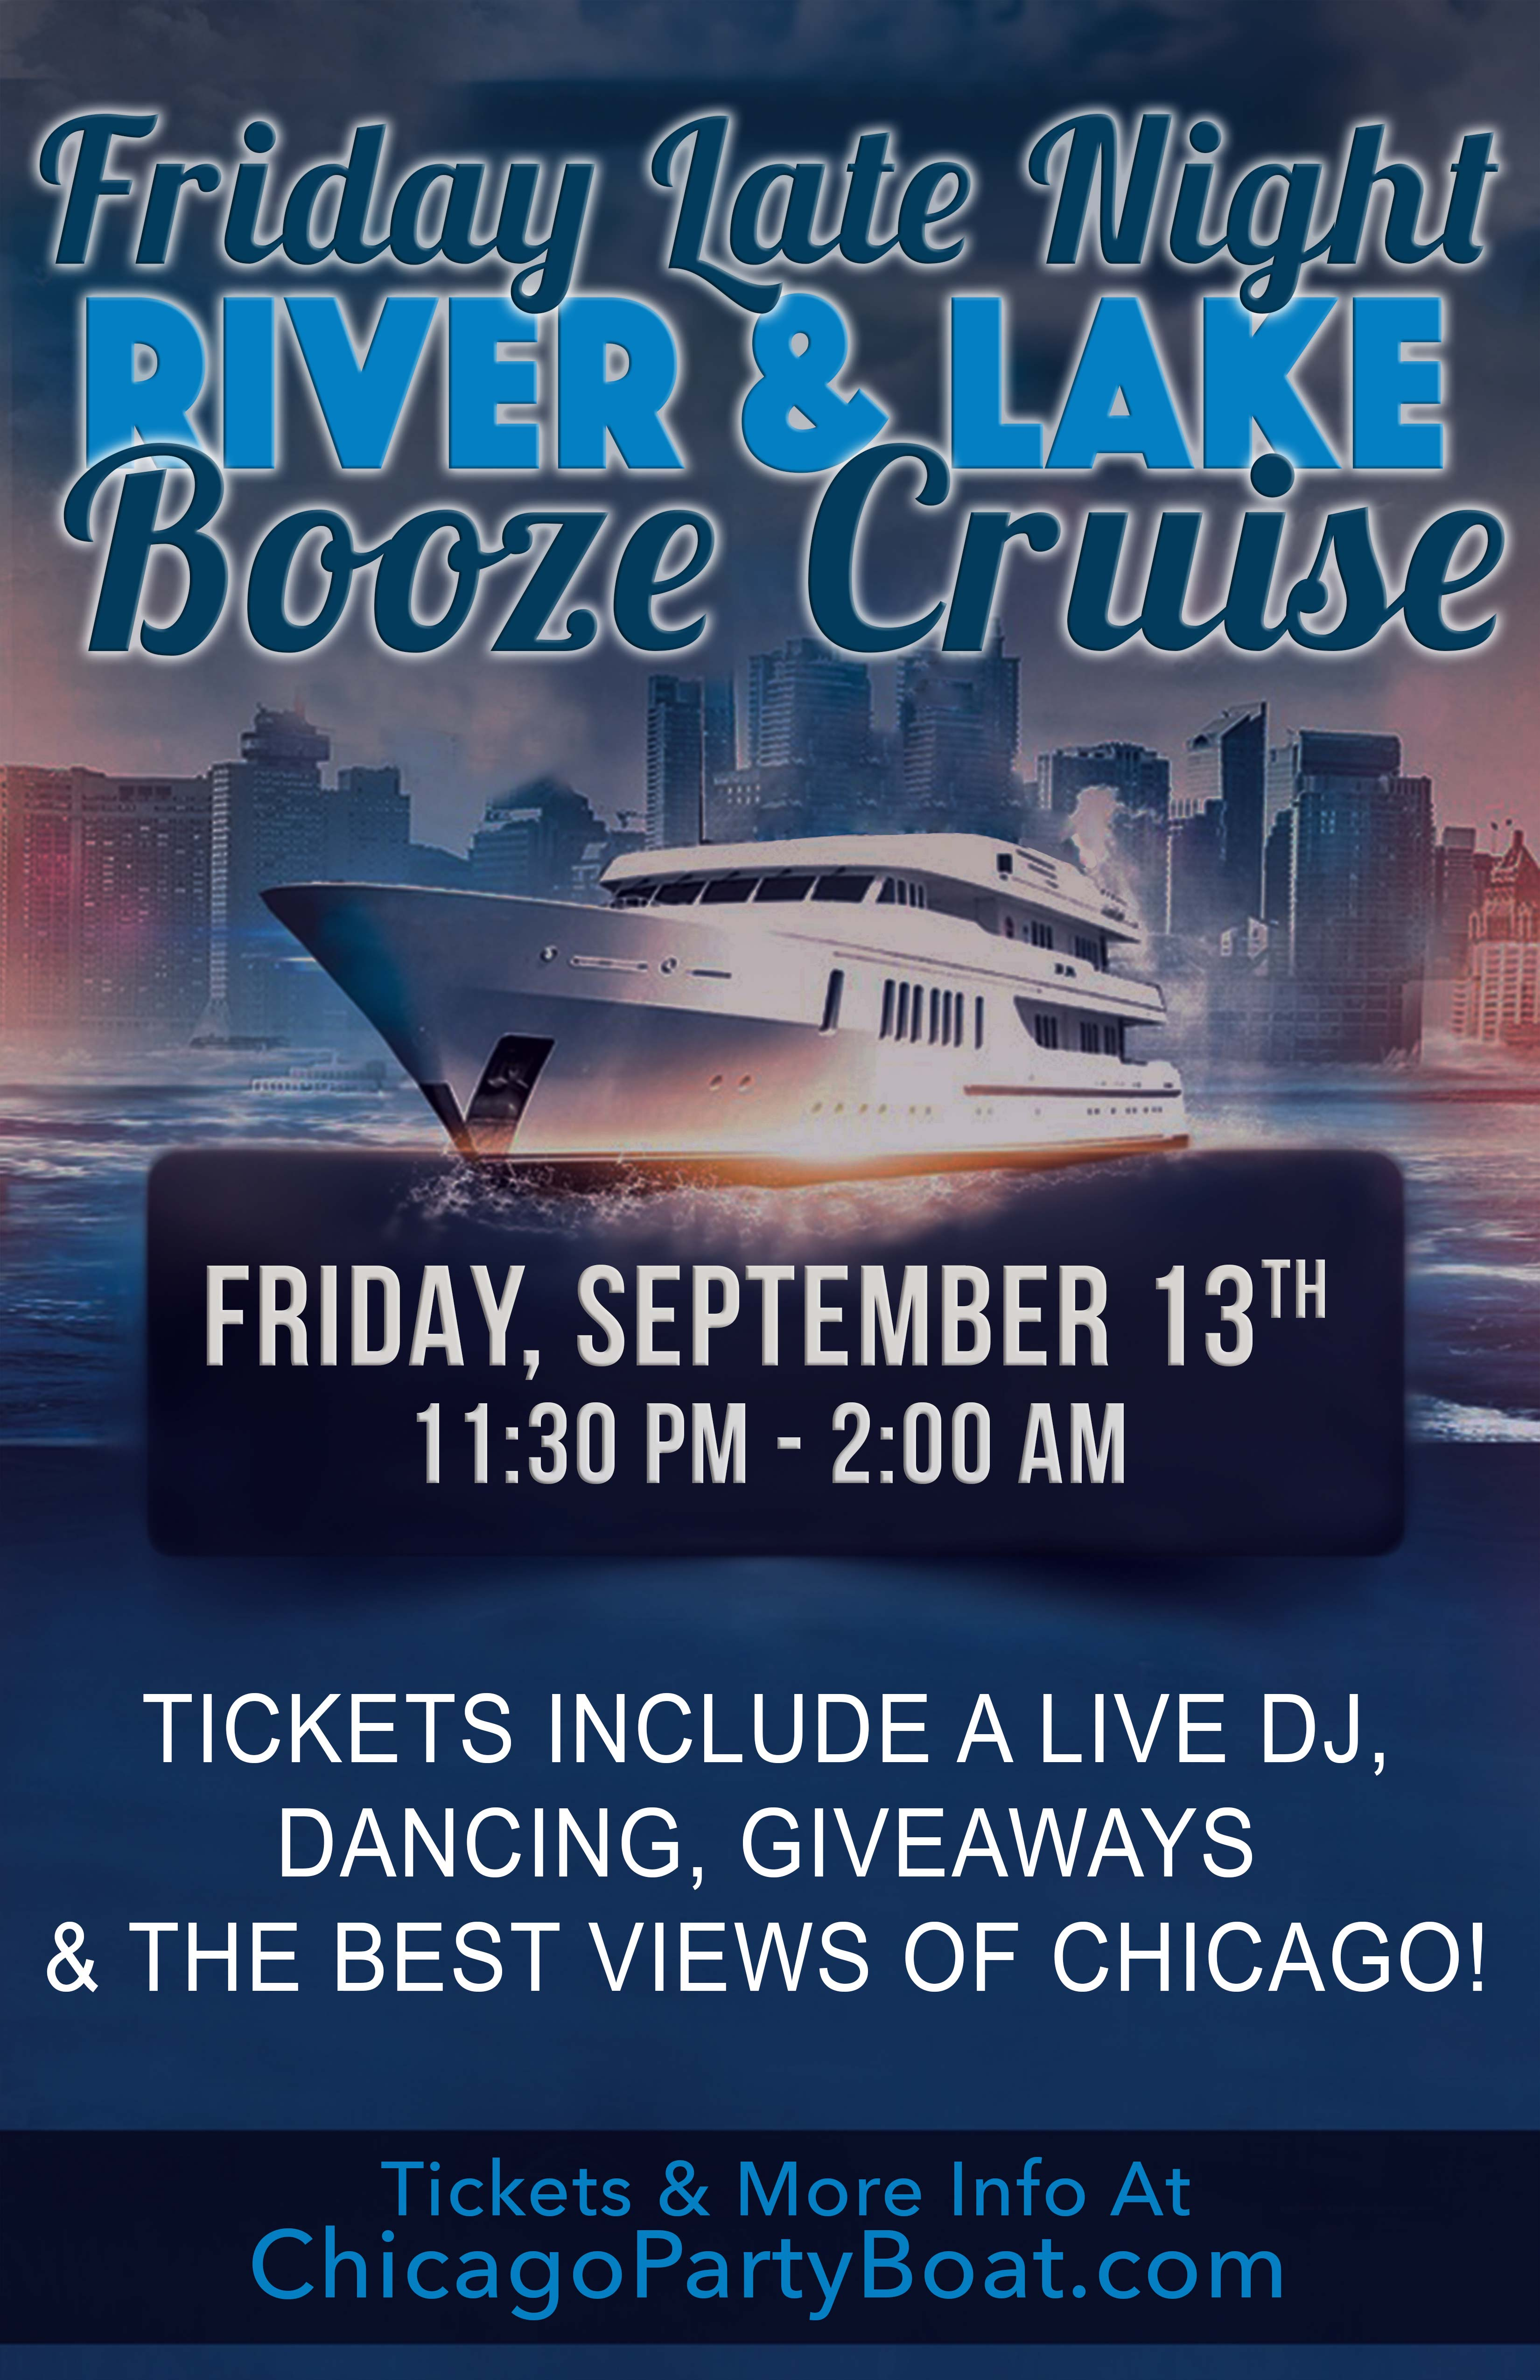 Friday Late Night River and Lake Booze Cruise Party - Tickets include a Live DJ, Dancing, Giveaways and the Best Views of Chicago!